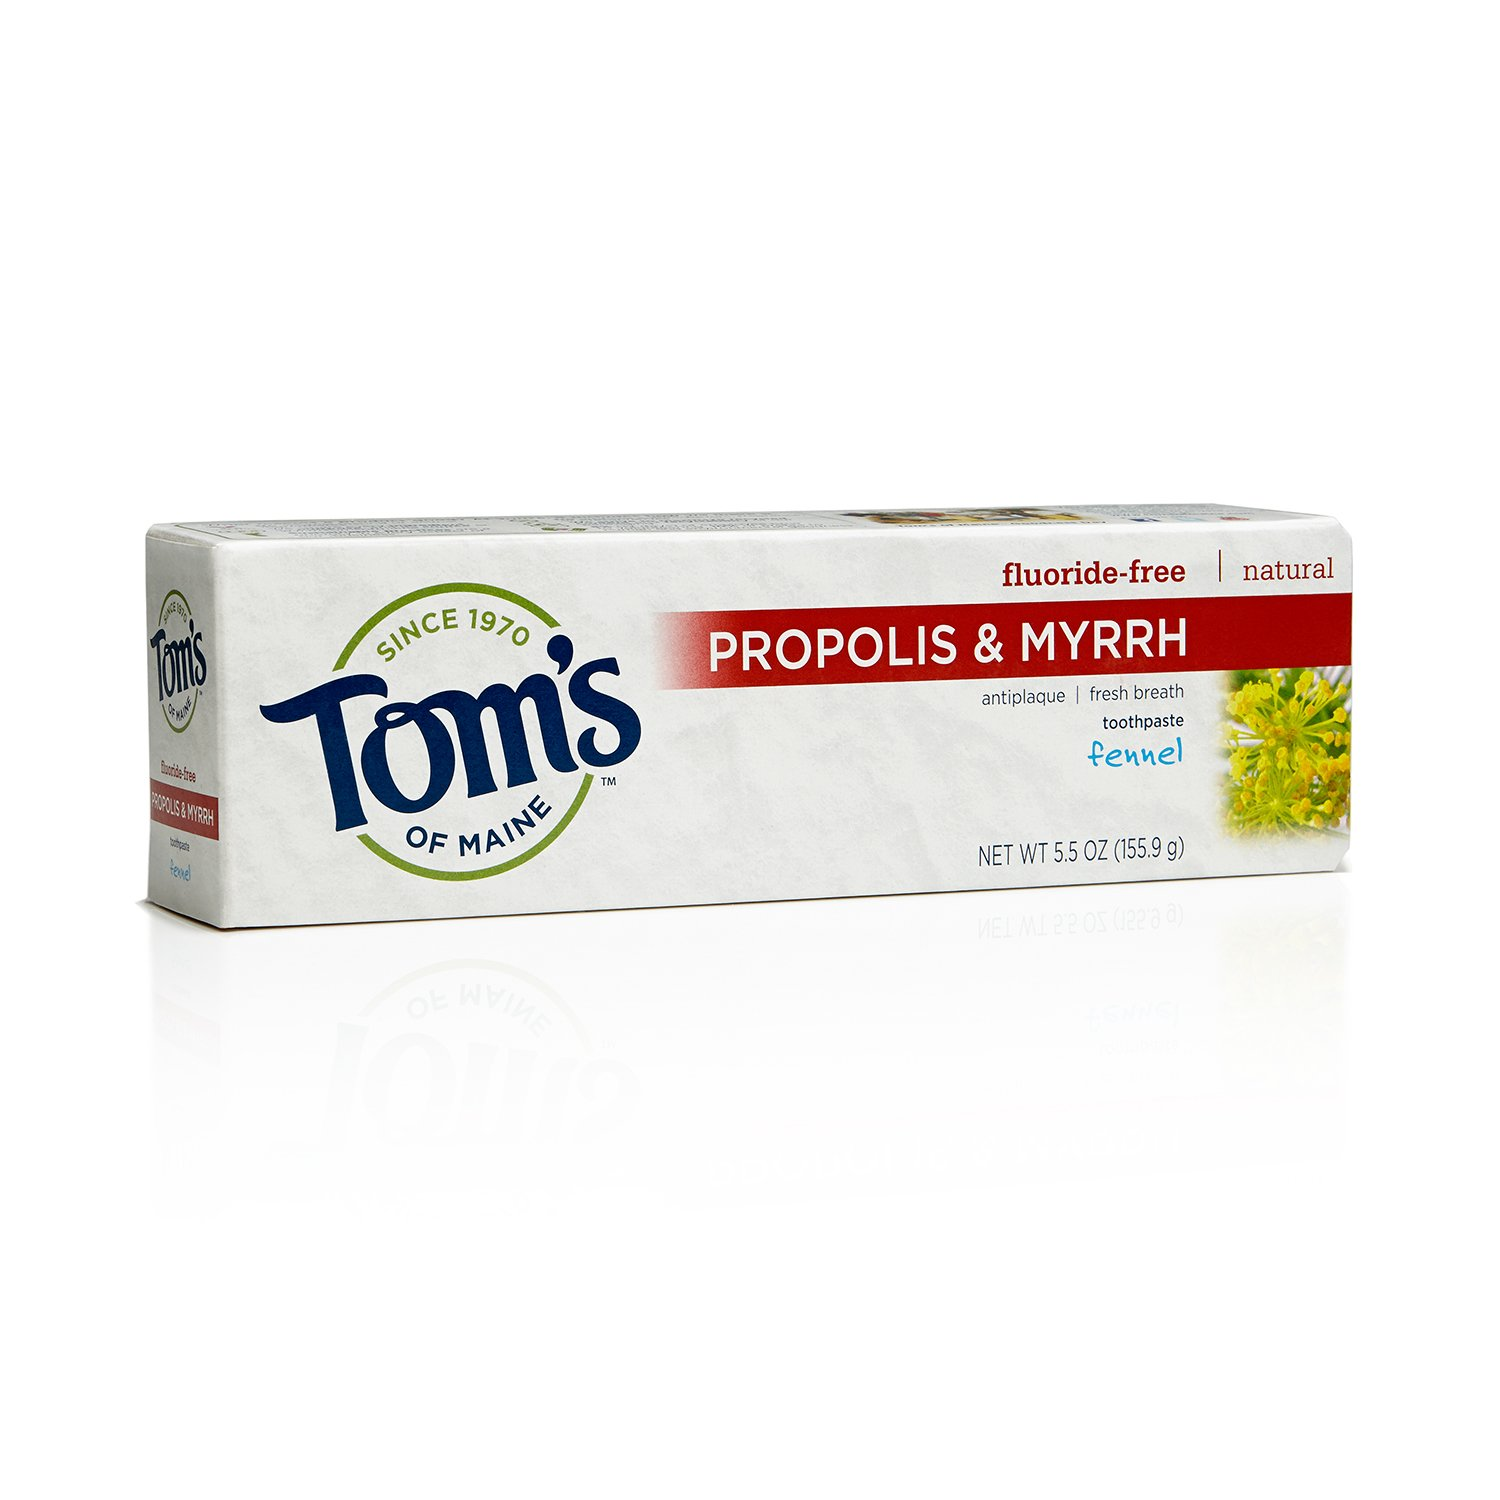 Tom's of Maine 683074 Fluoride-Free Natural Toothpaste with Propolis and Myrrh, Fennel, 5.5 Ounce, 24 Count